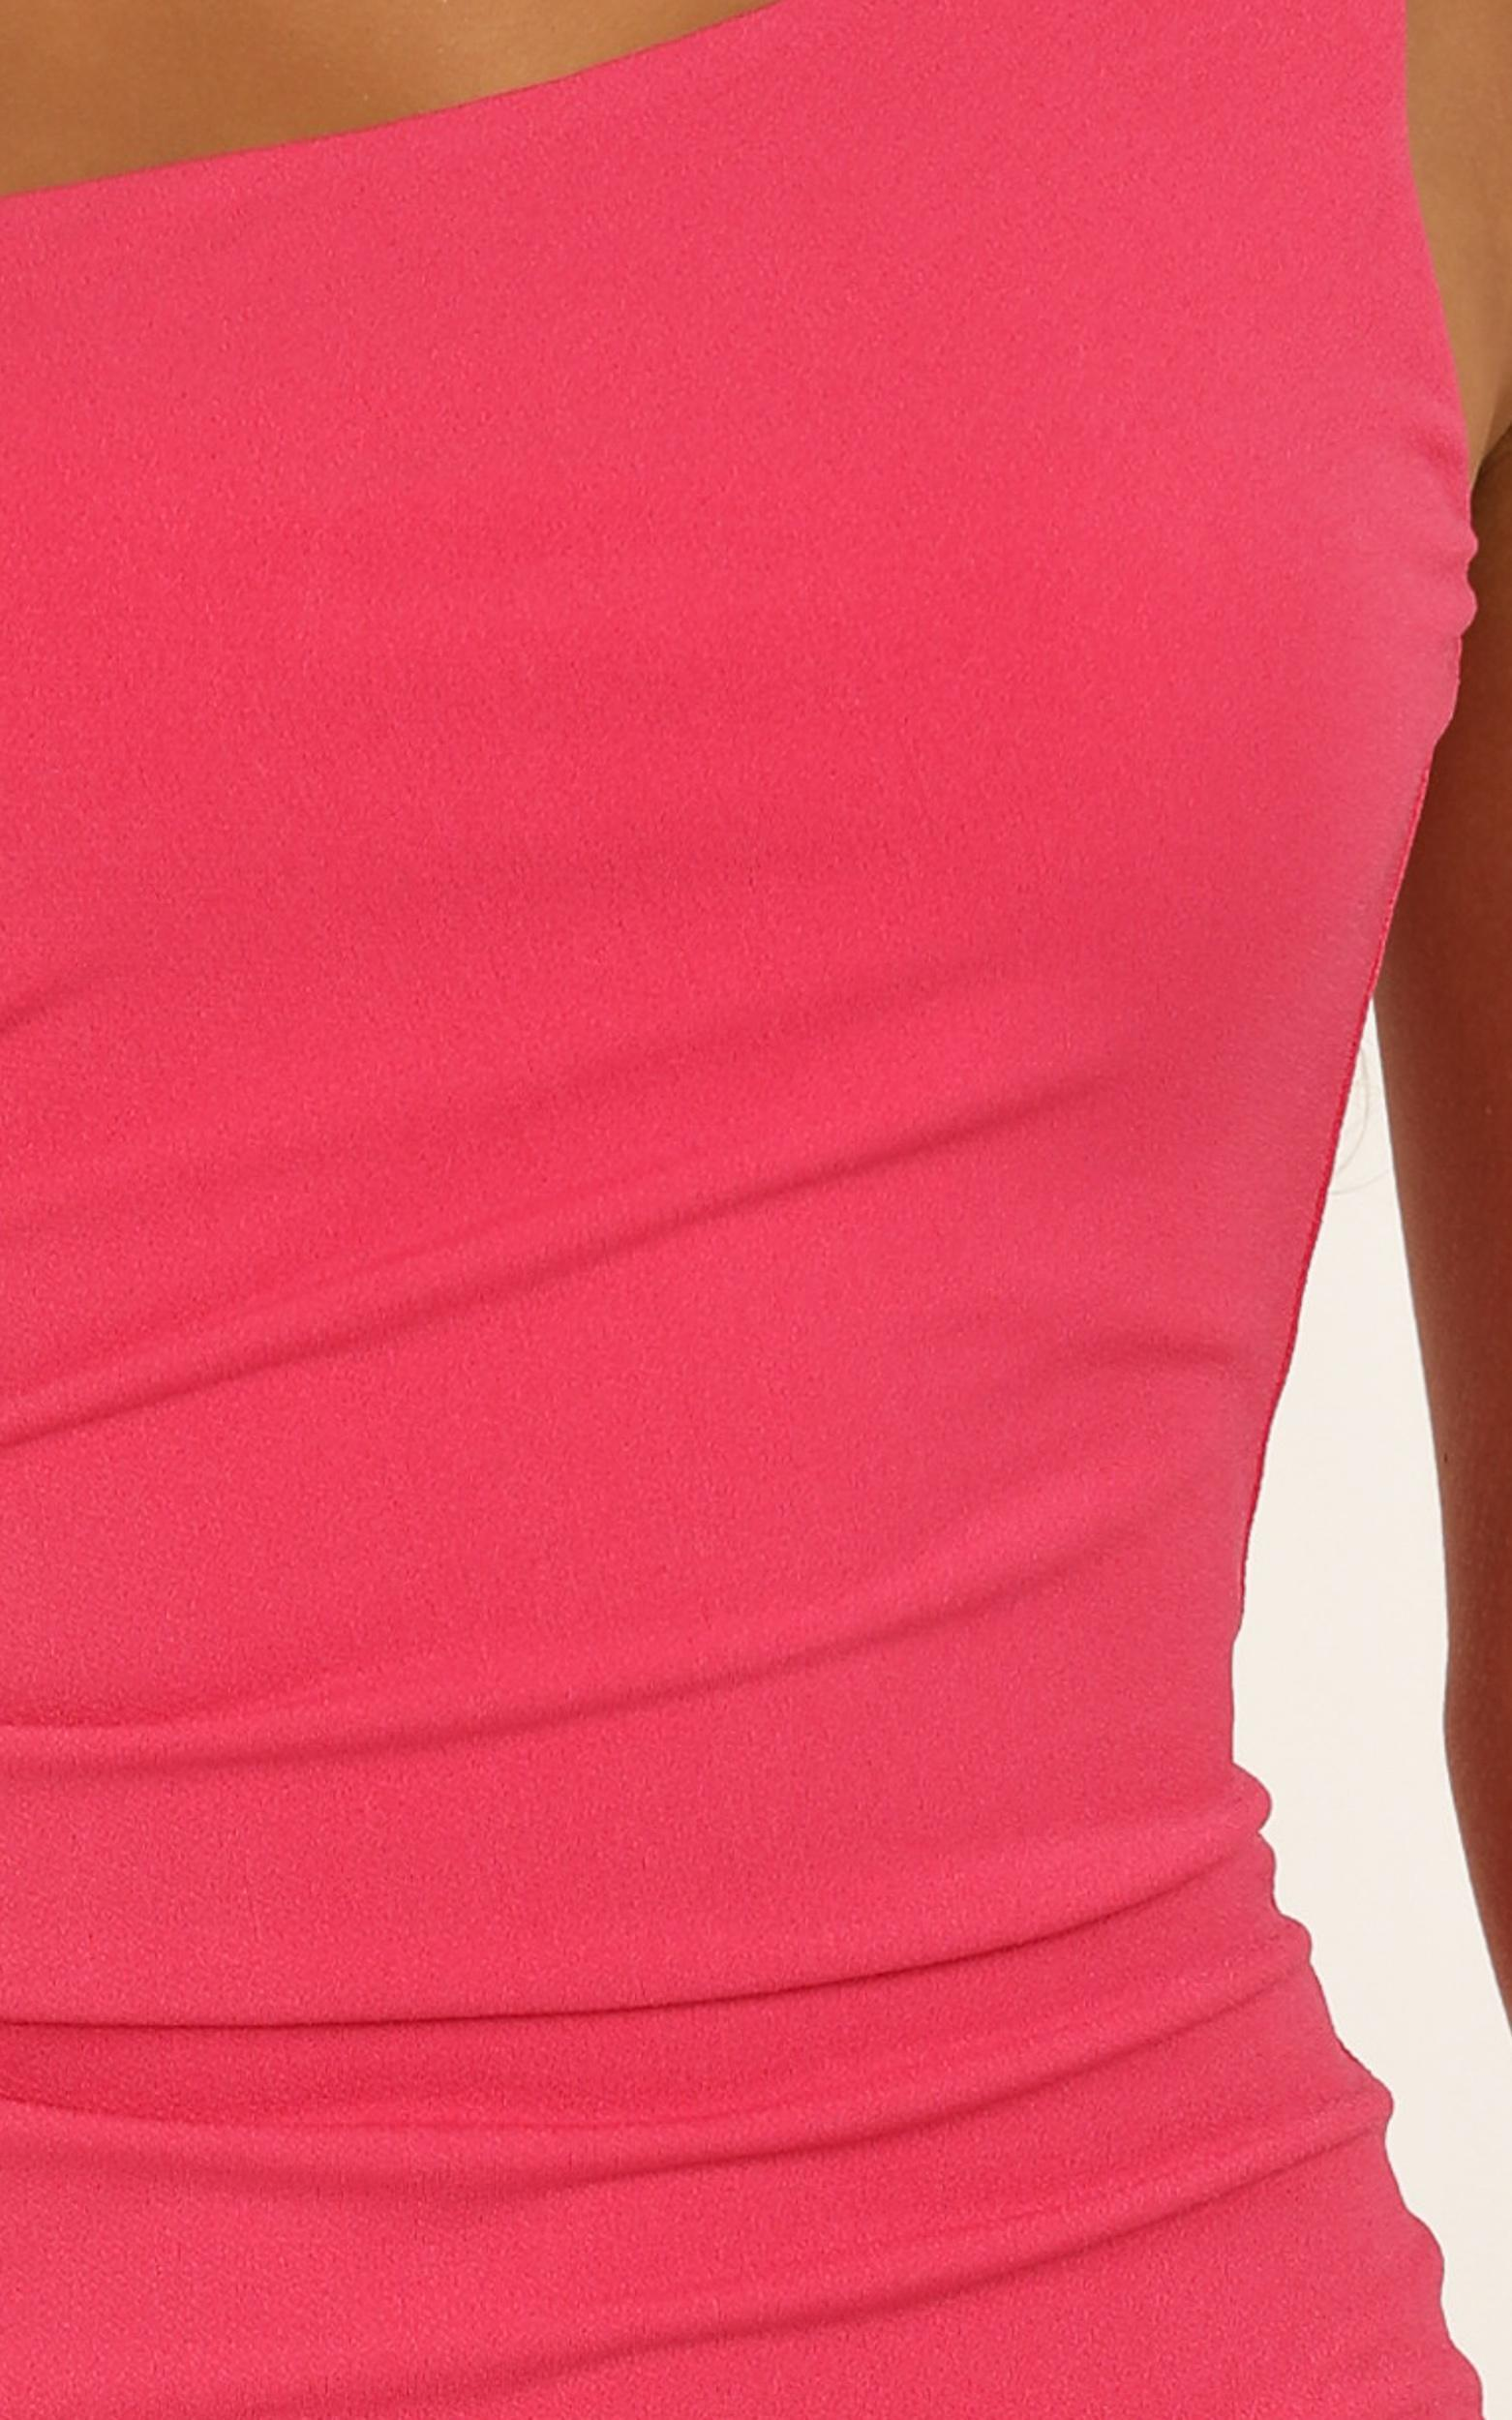 Got Me Looking Dress in Pink - 20 (XXXXL), Pink, hi-res image number null